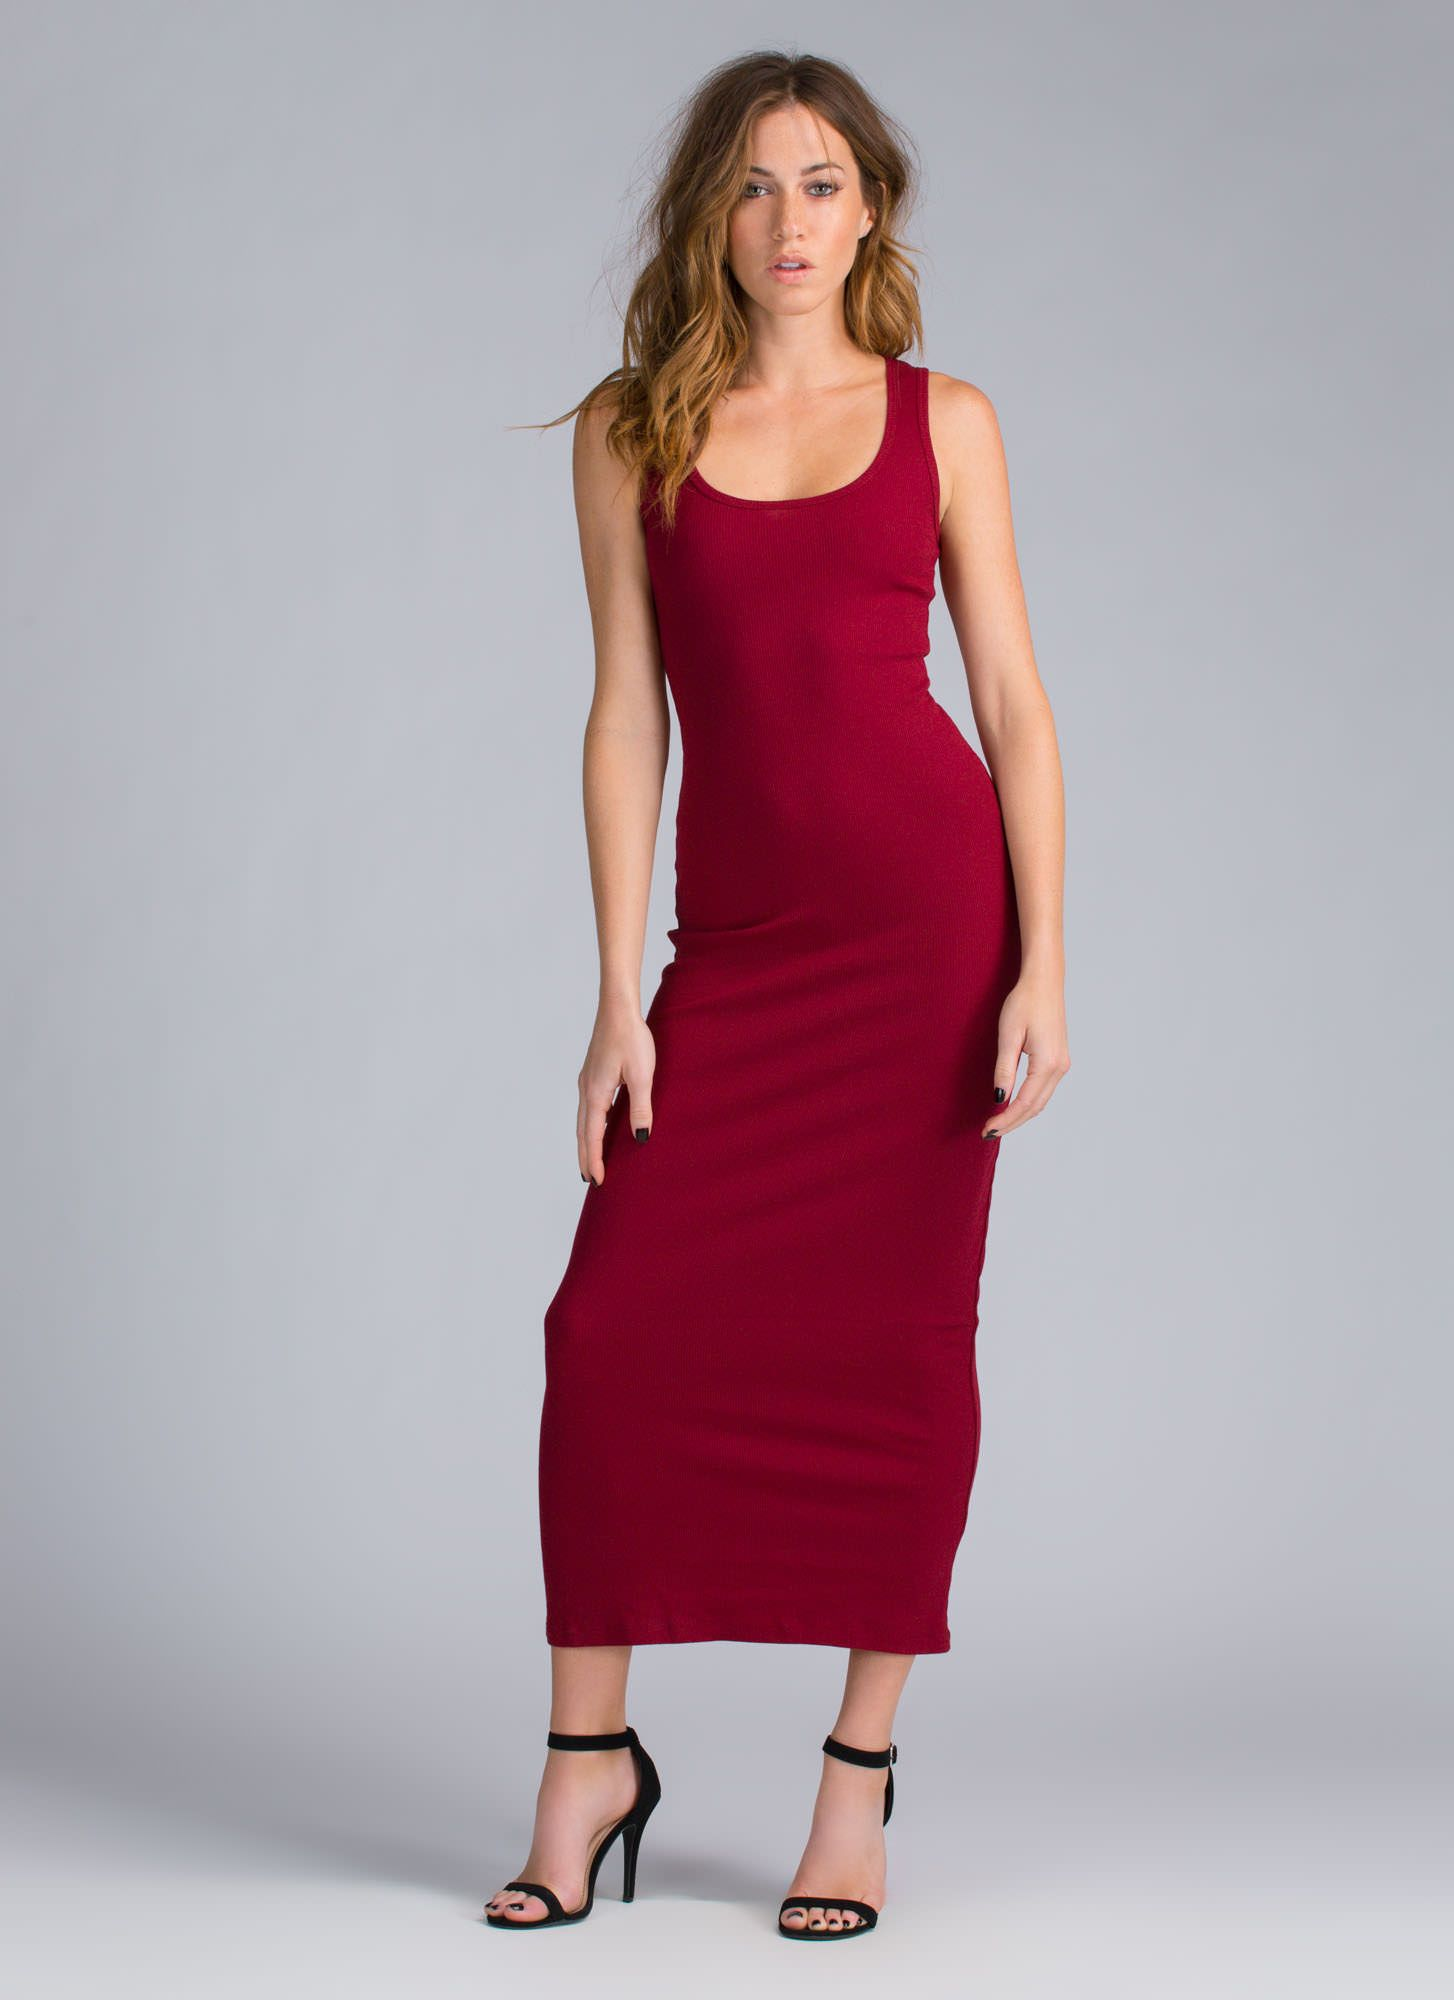 Bring on the basic ribbed maxi dress in casual dresses